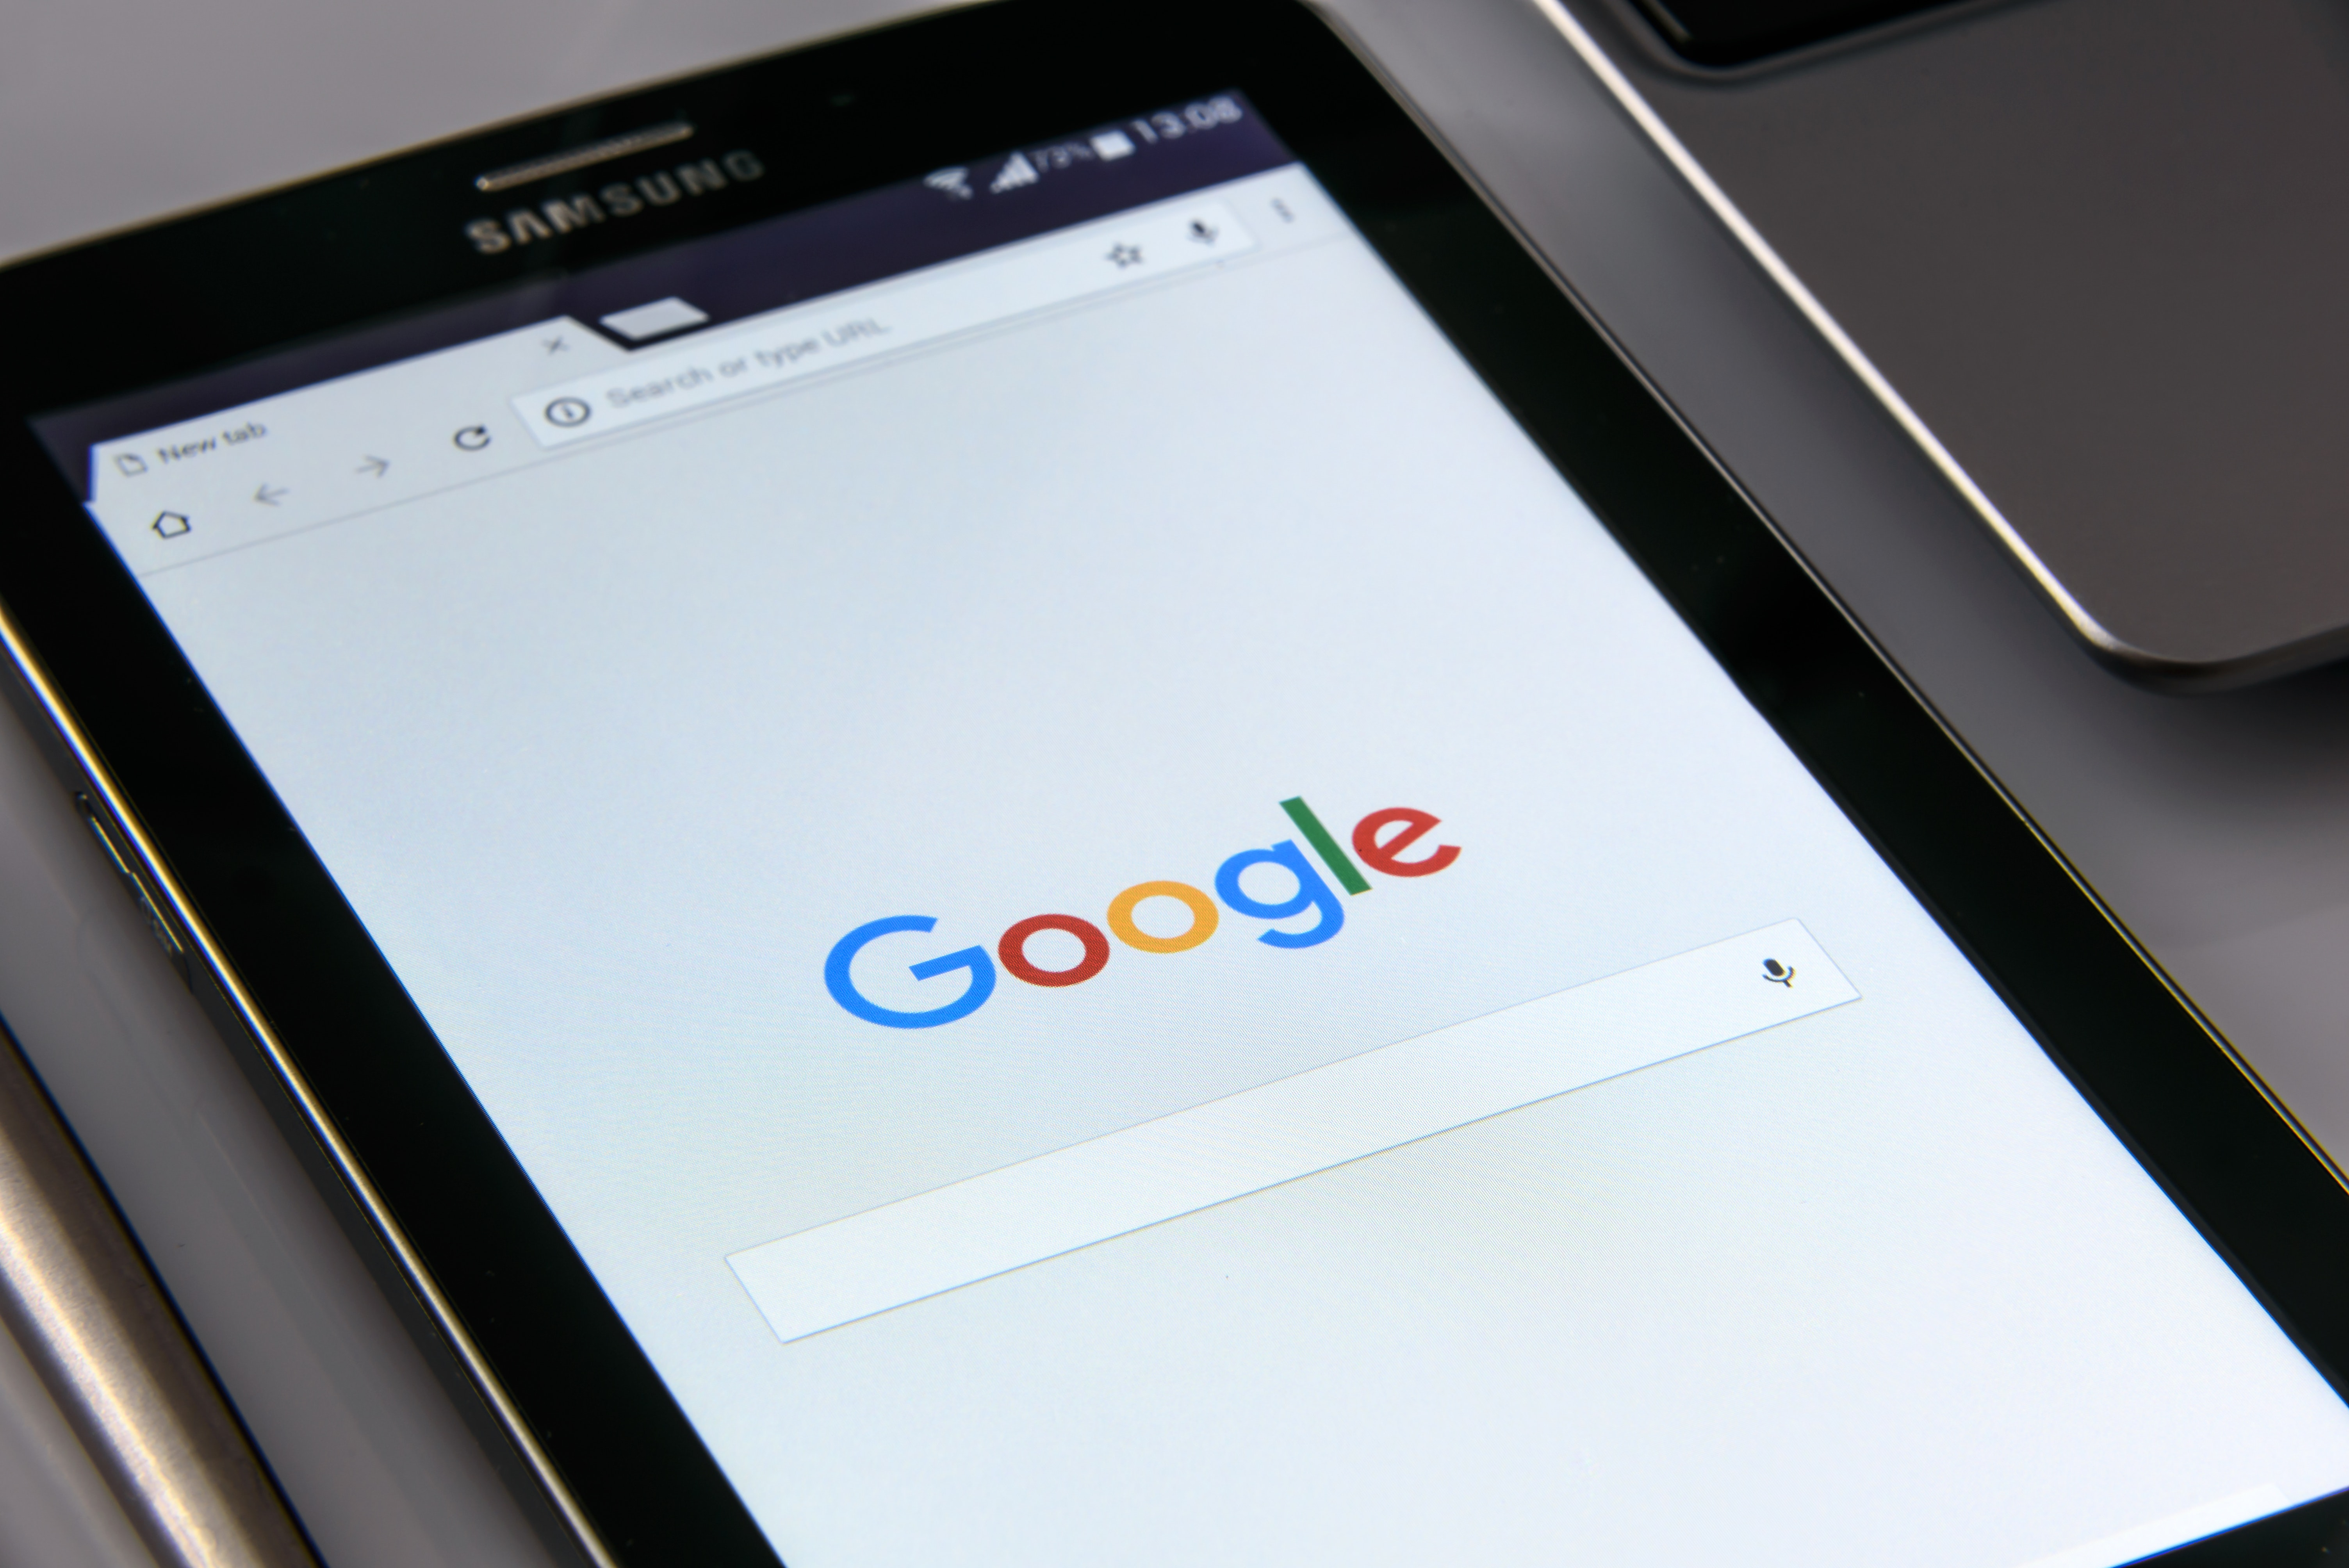 Google-Search-Tricks-Tips